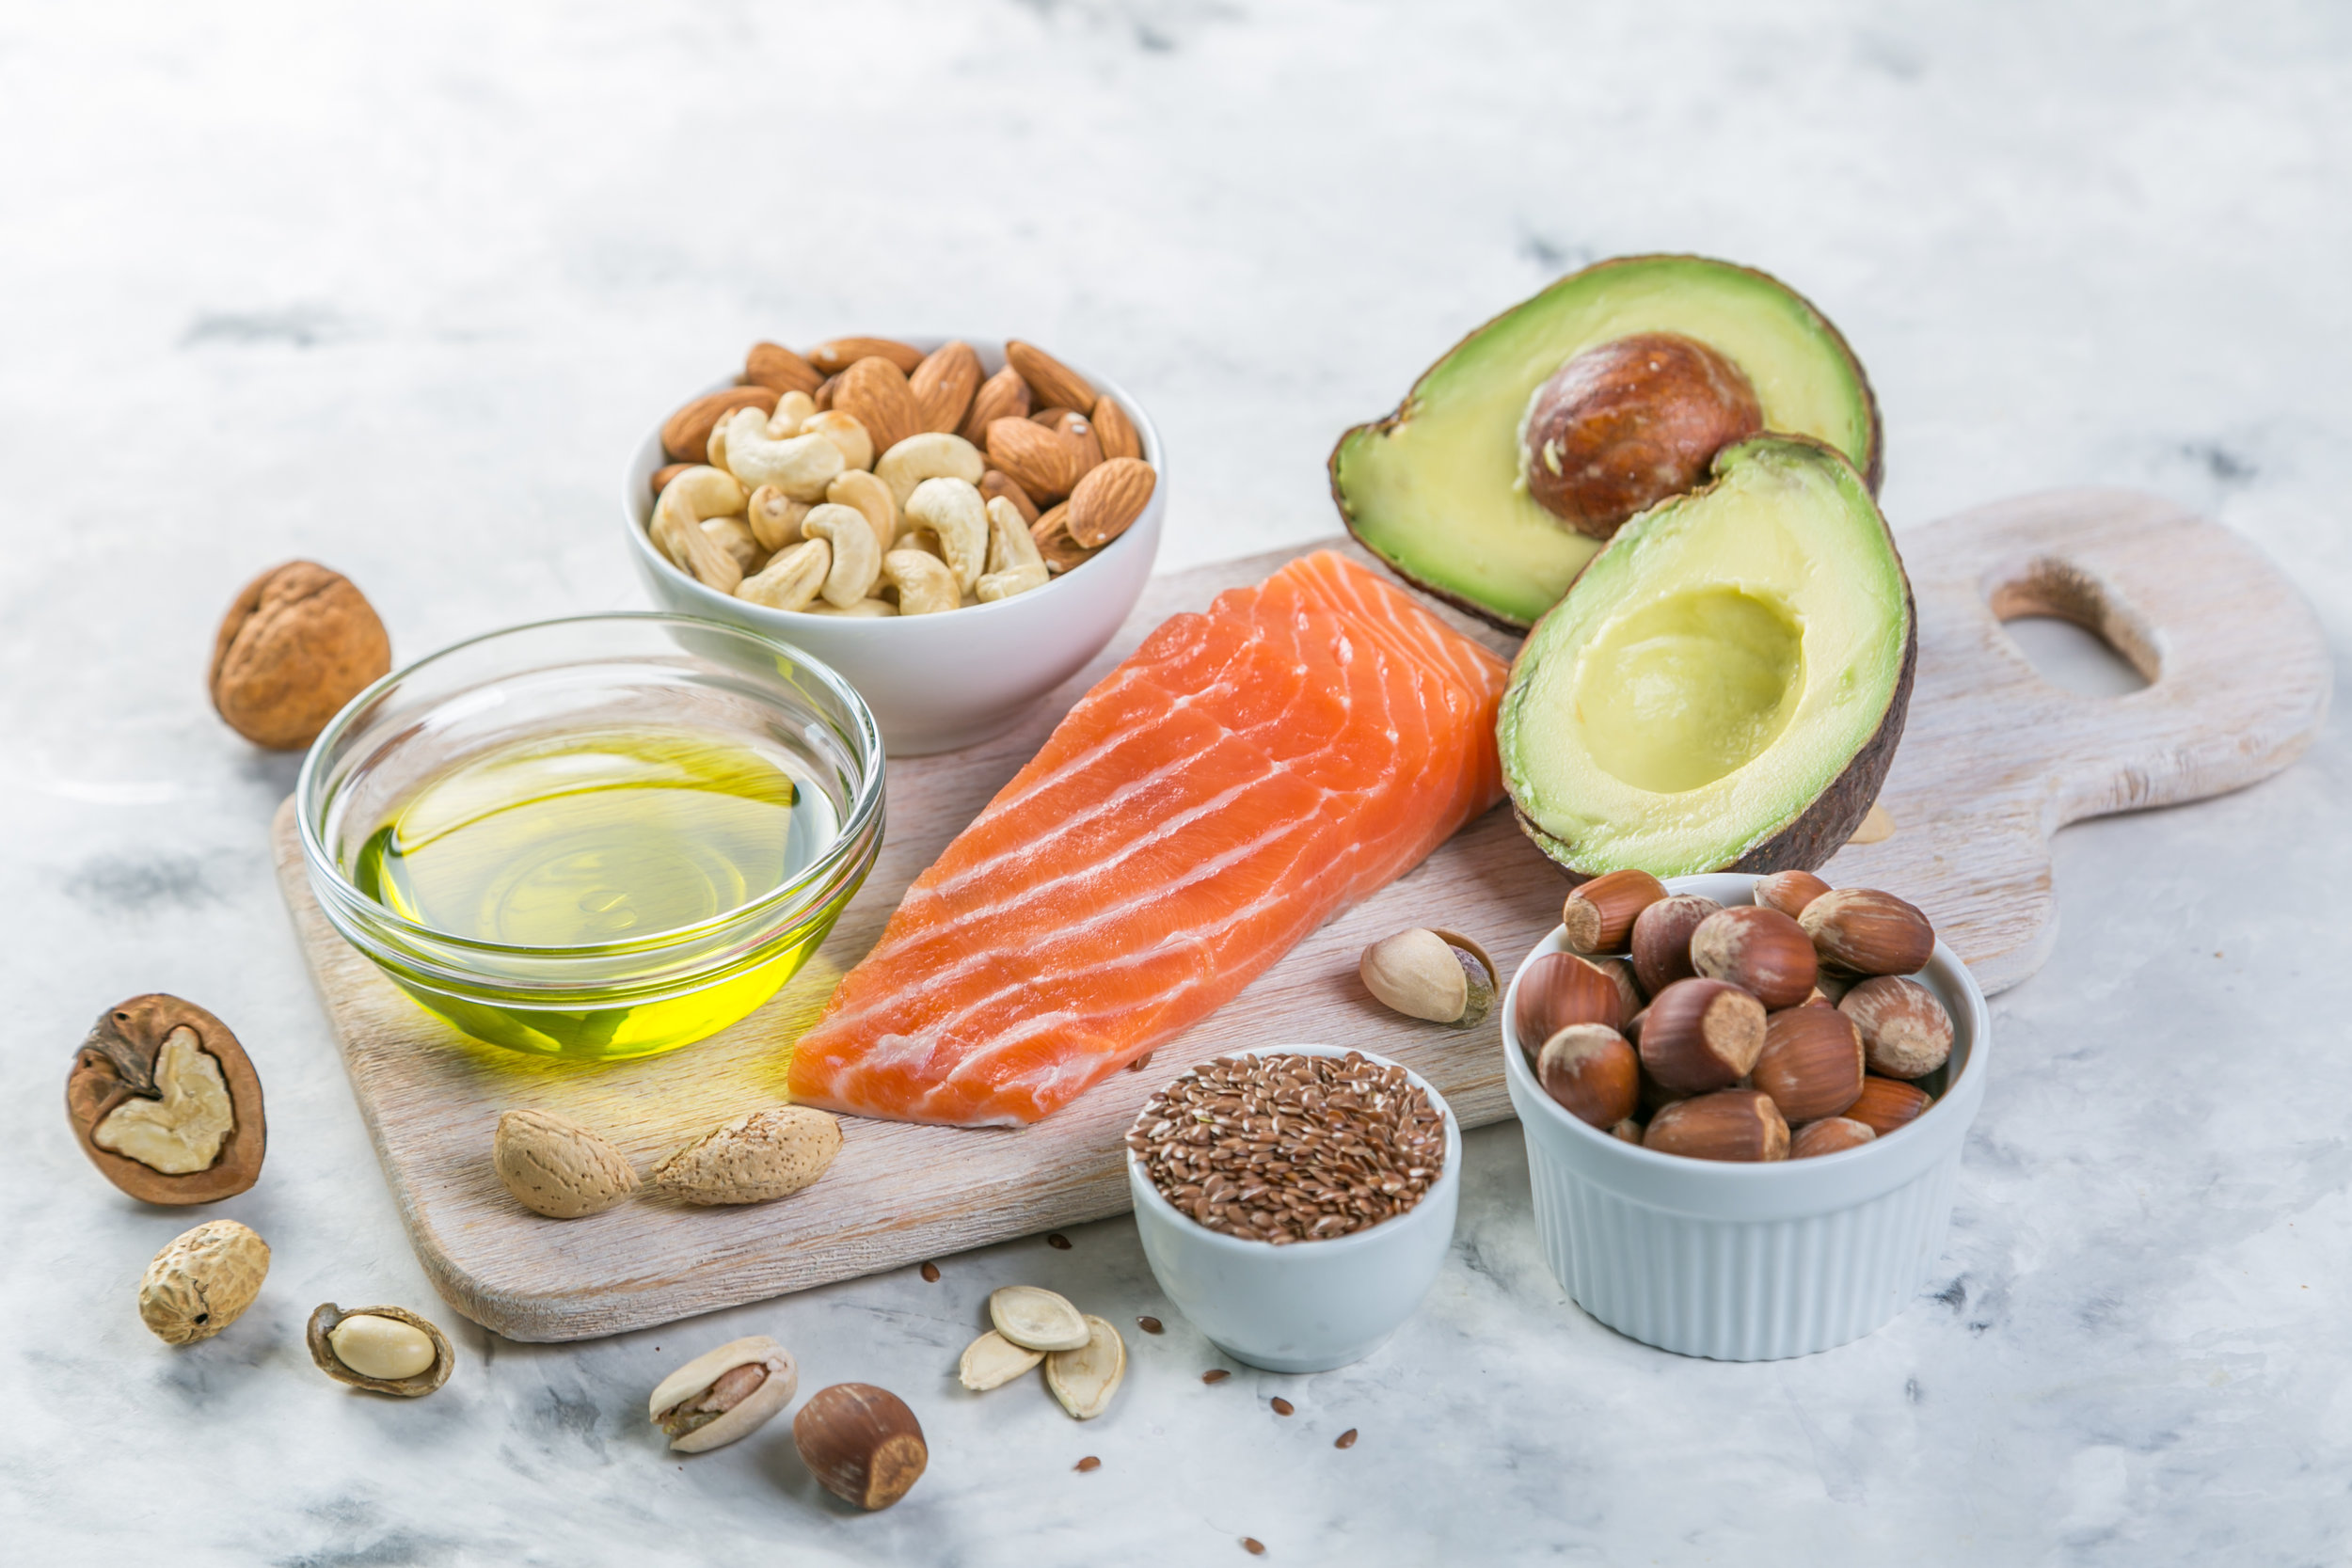 Nourishing the brain - Our brains need the right nutrients to thrive. To carry nutrients into our body and brain effectively, we rely on fatty acids.Fatty acids have biological, structural and functional roles, and act as a key source of energy.